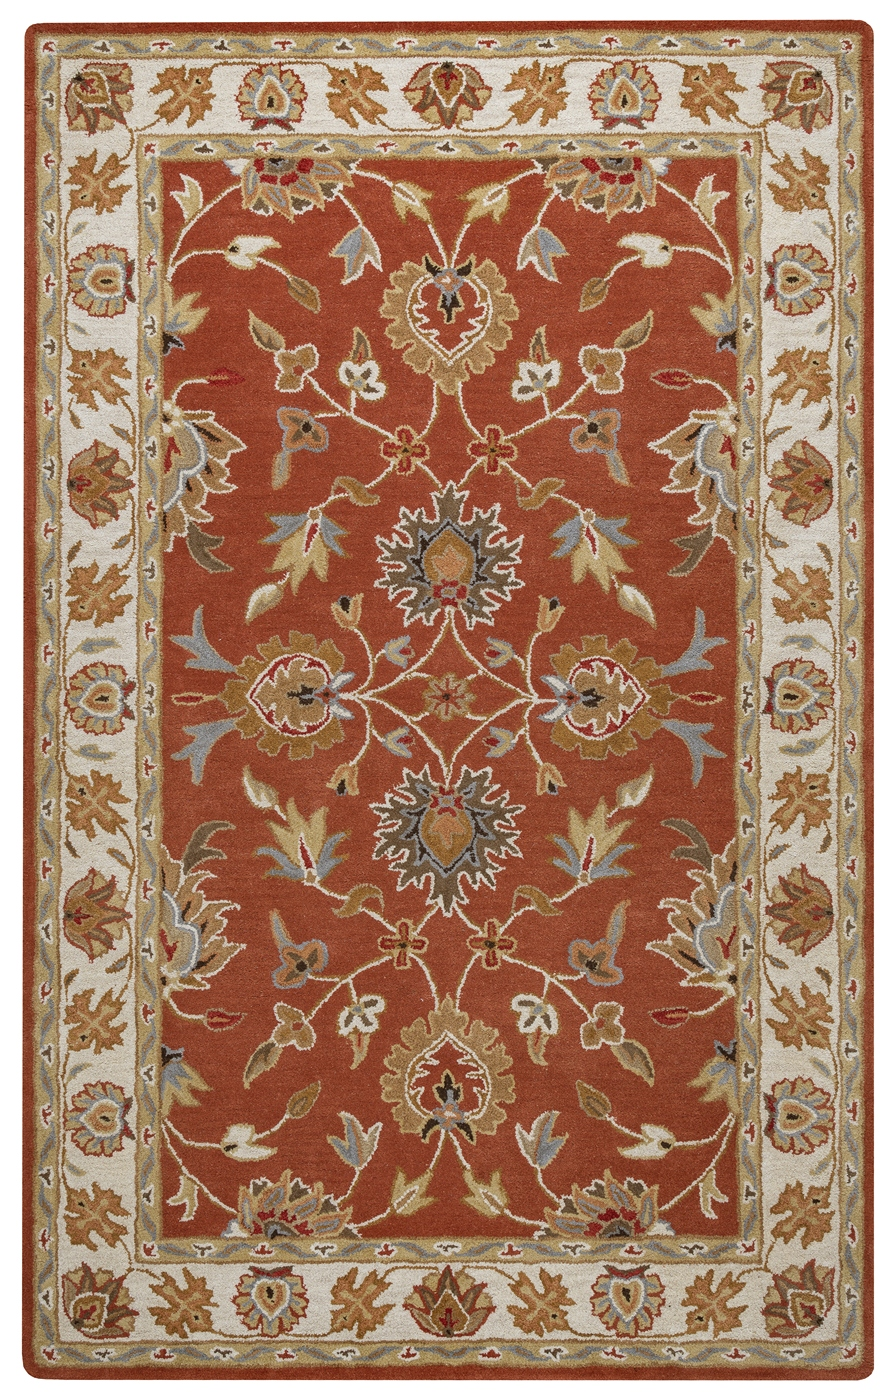 Valintino Floral Vine Border Wool Area Rug In Rust Blue